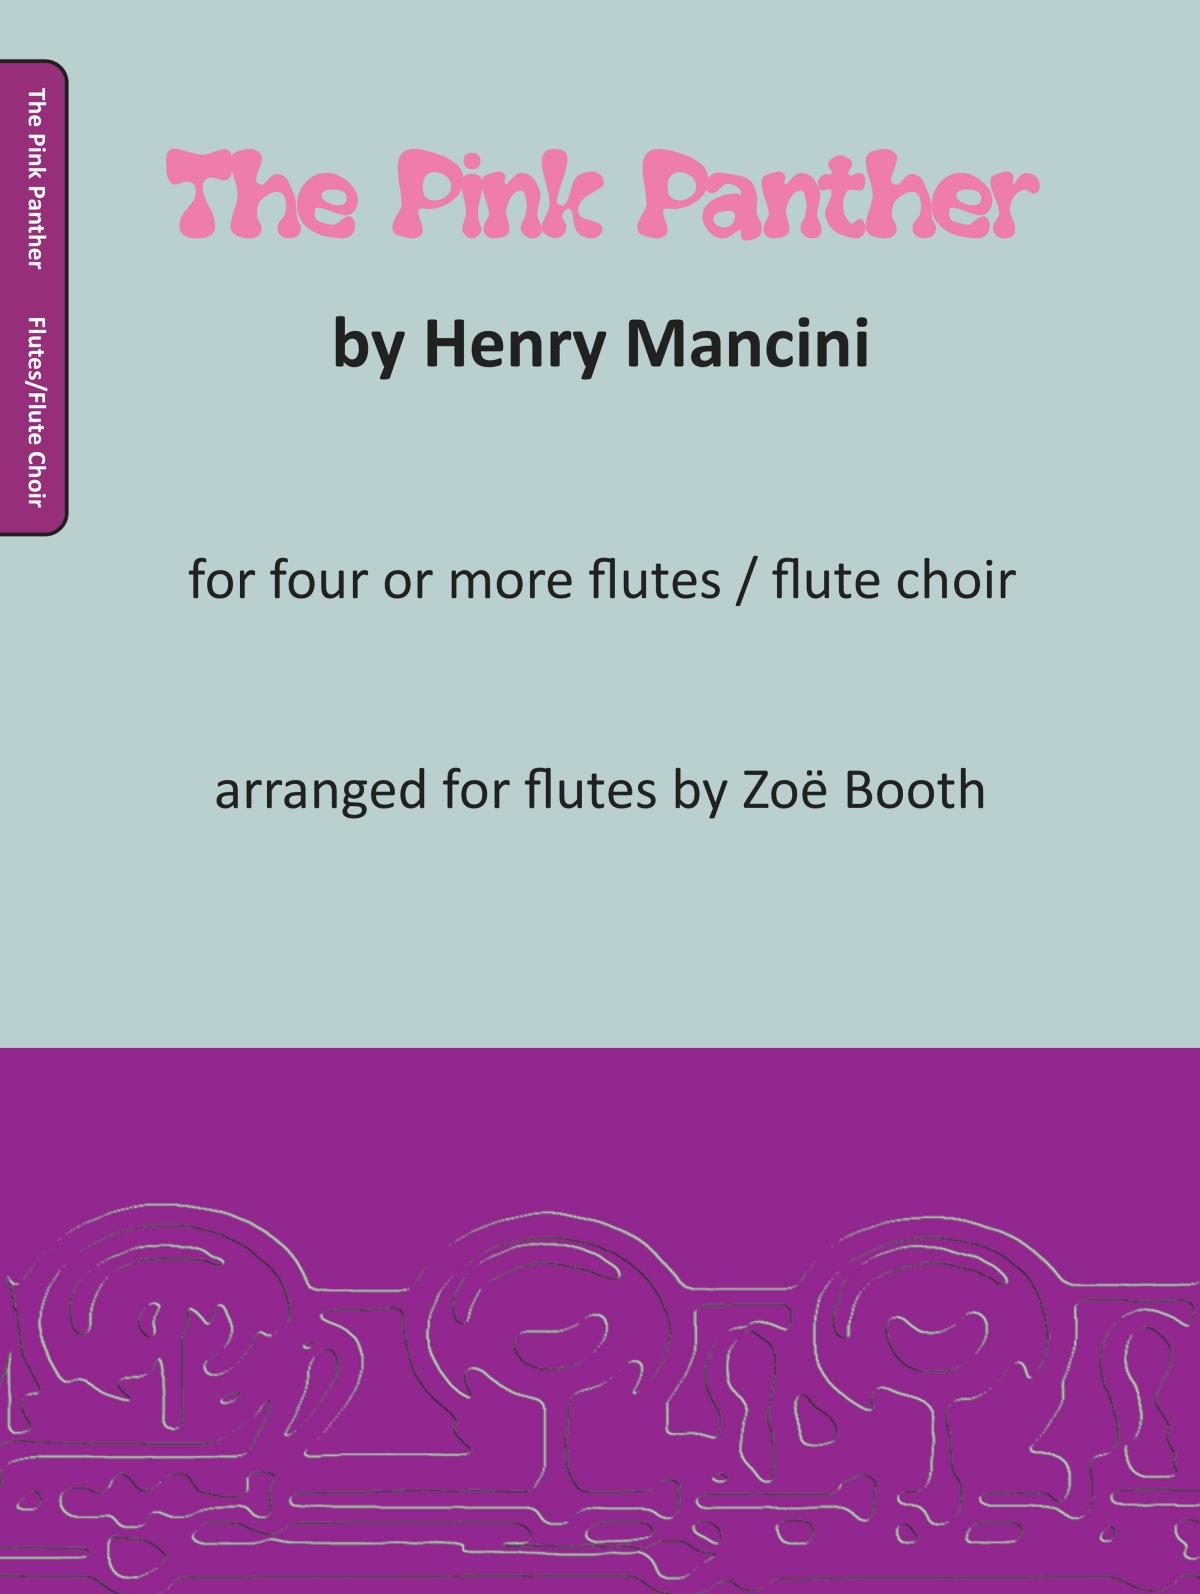 The Pink Panther Theme by Mancini,  arranged by Zoë Booth for four or more flutes/flute choir